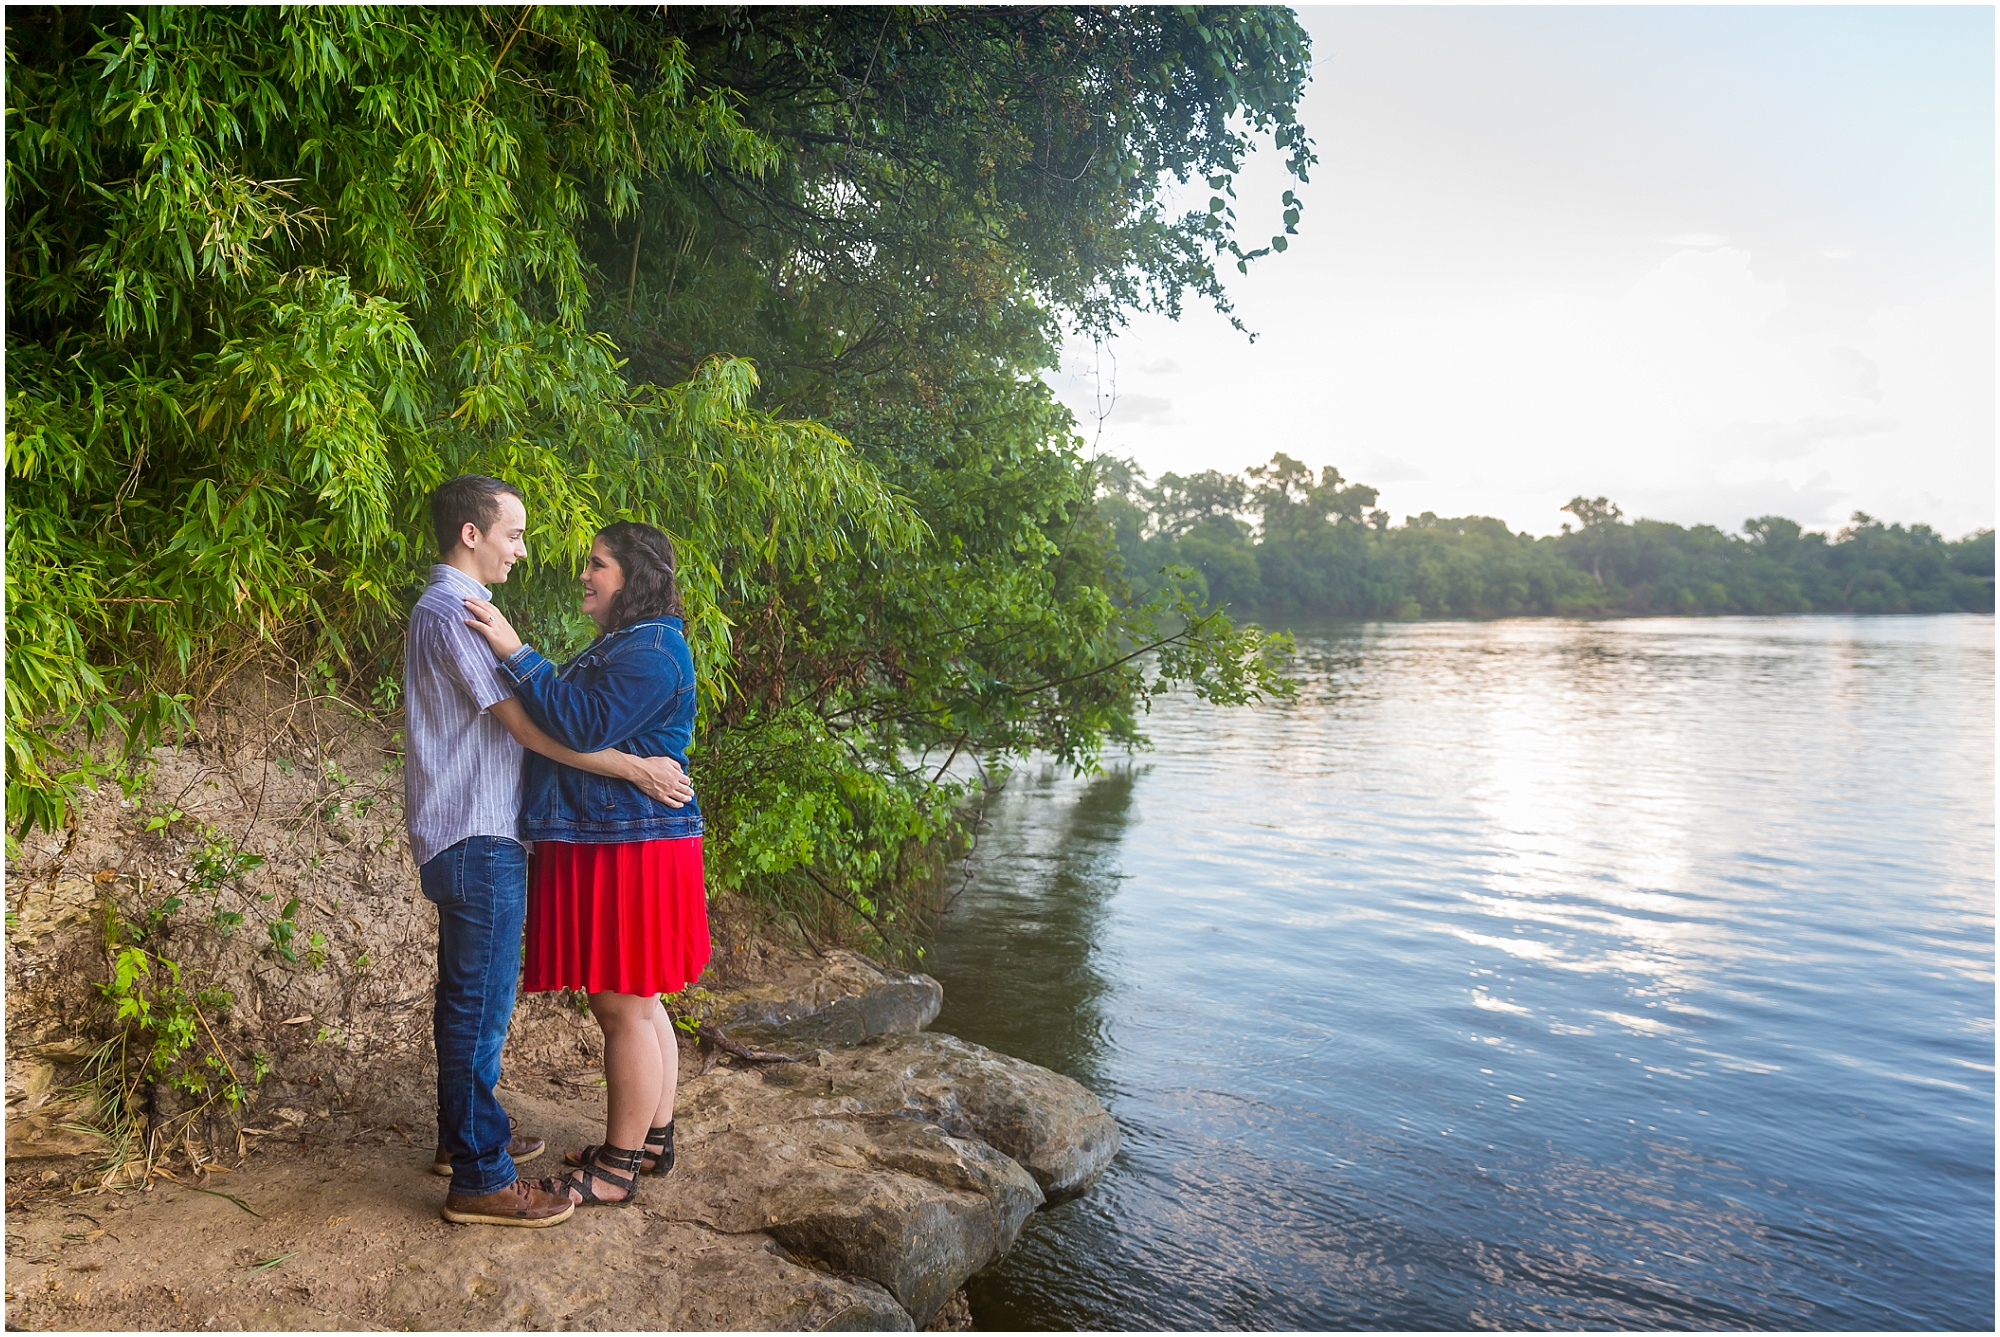 A couple embraces near Brazos River in Cameron Park in Waco, Texas during the engagement photos - Jason & Melaina Photography - www.jasonandmelaina.com